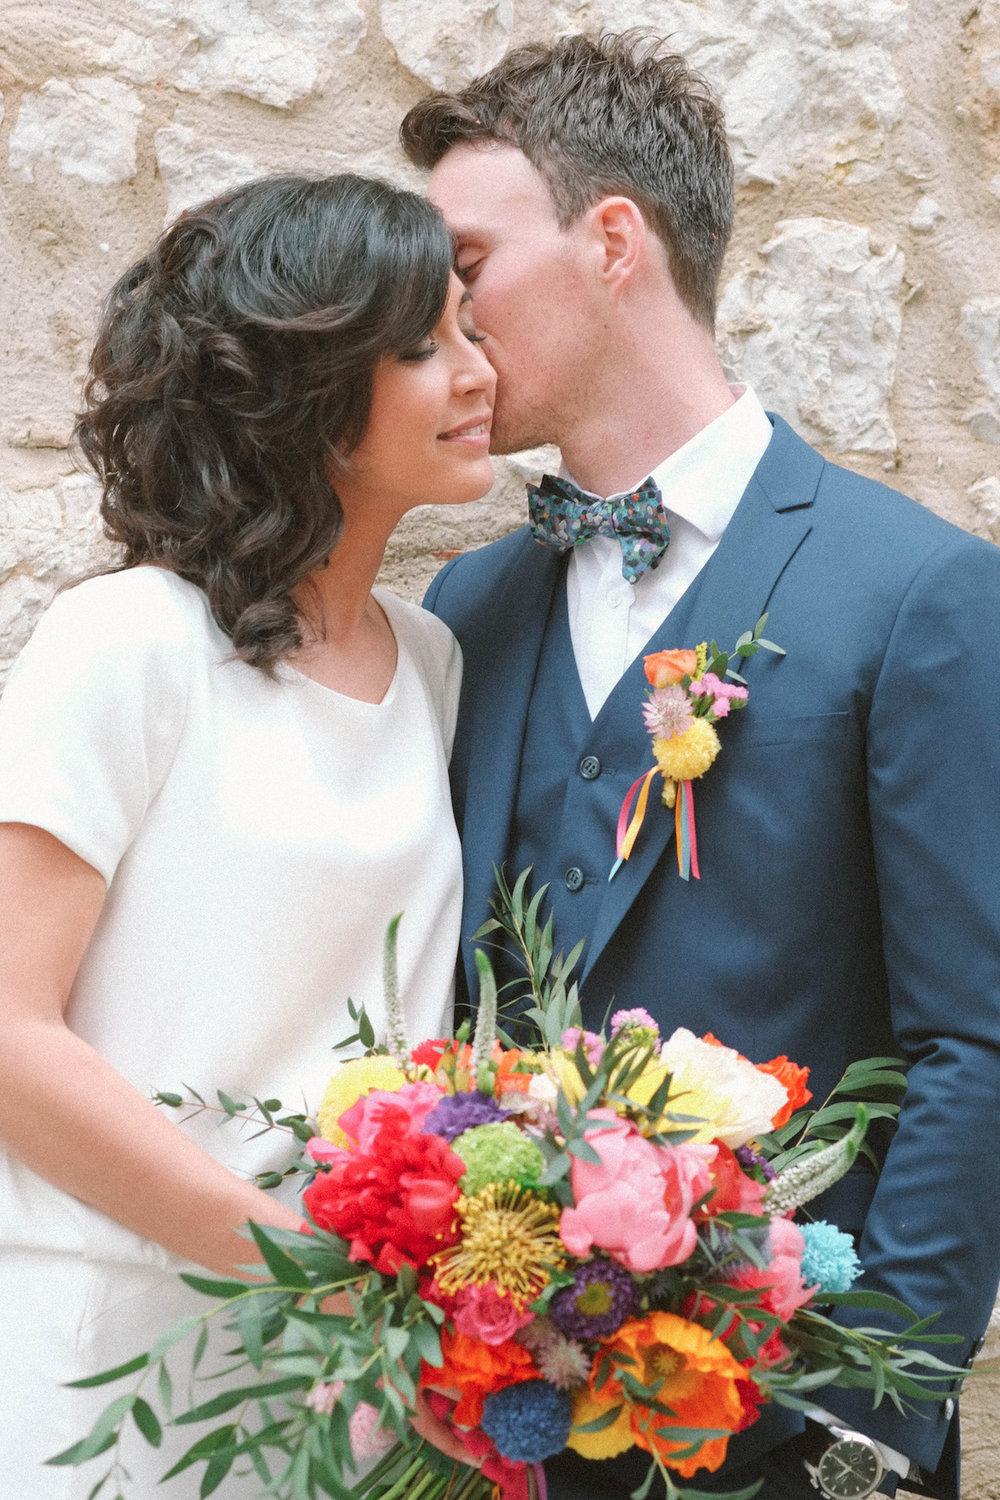 elopement-colorful-©-saya-photography-wedding-photographer-photographe-mariage-saint-paul-vence-rock-my-love-studio-ohlala-french-riviera-couple-session.jpg